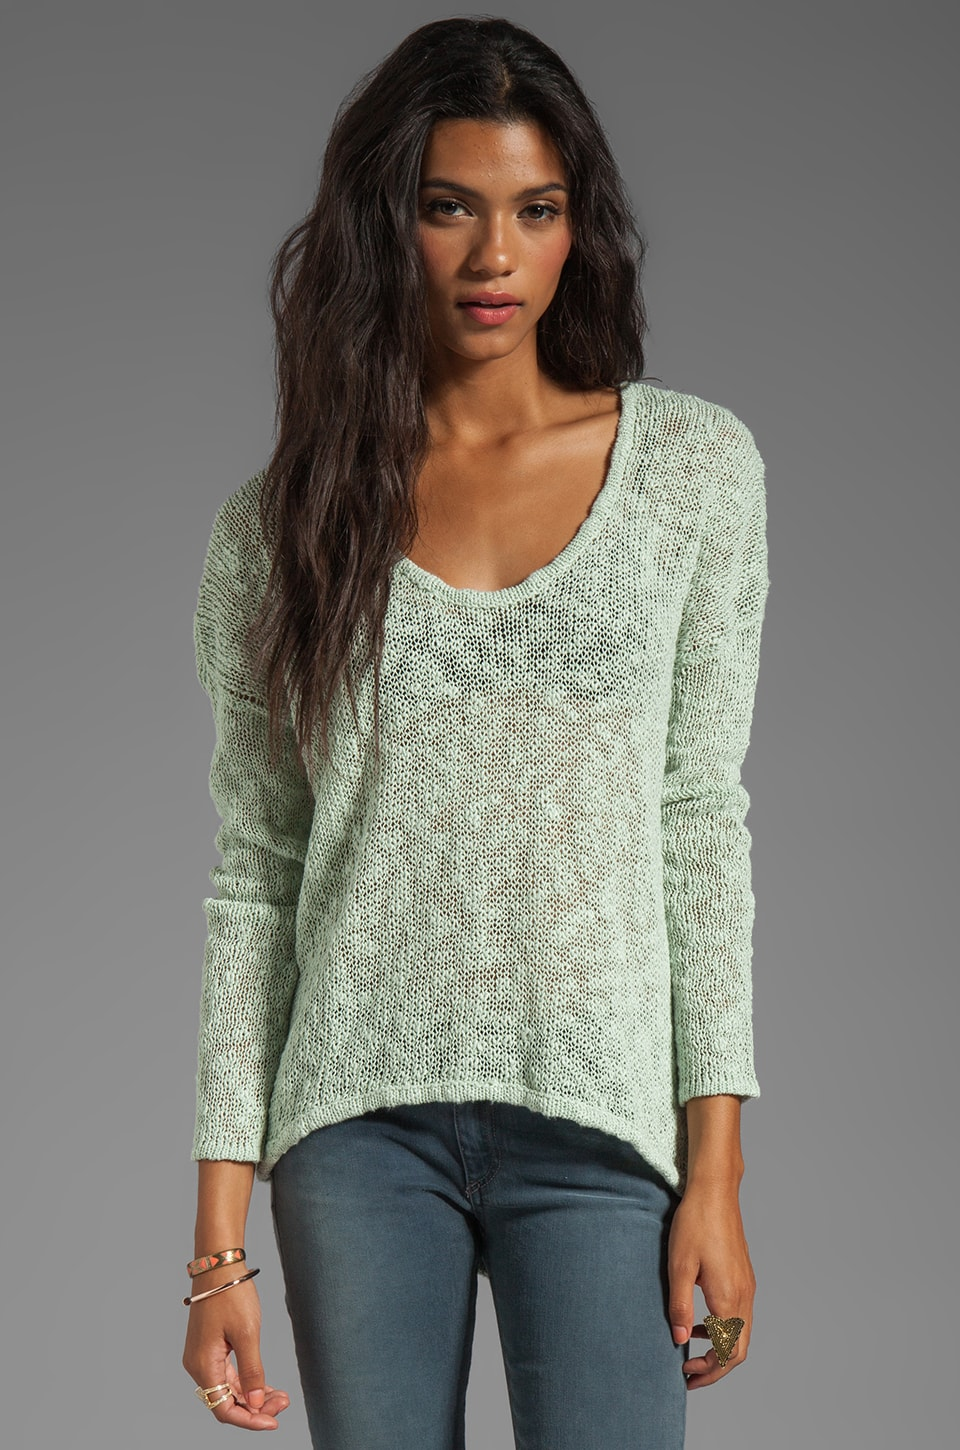 Feel the Piece Hi-Lo Sweater in Mint